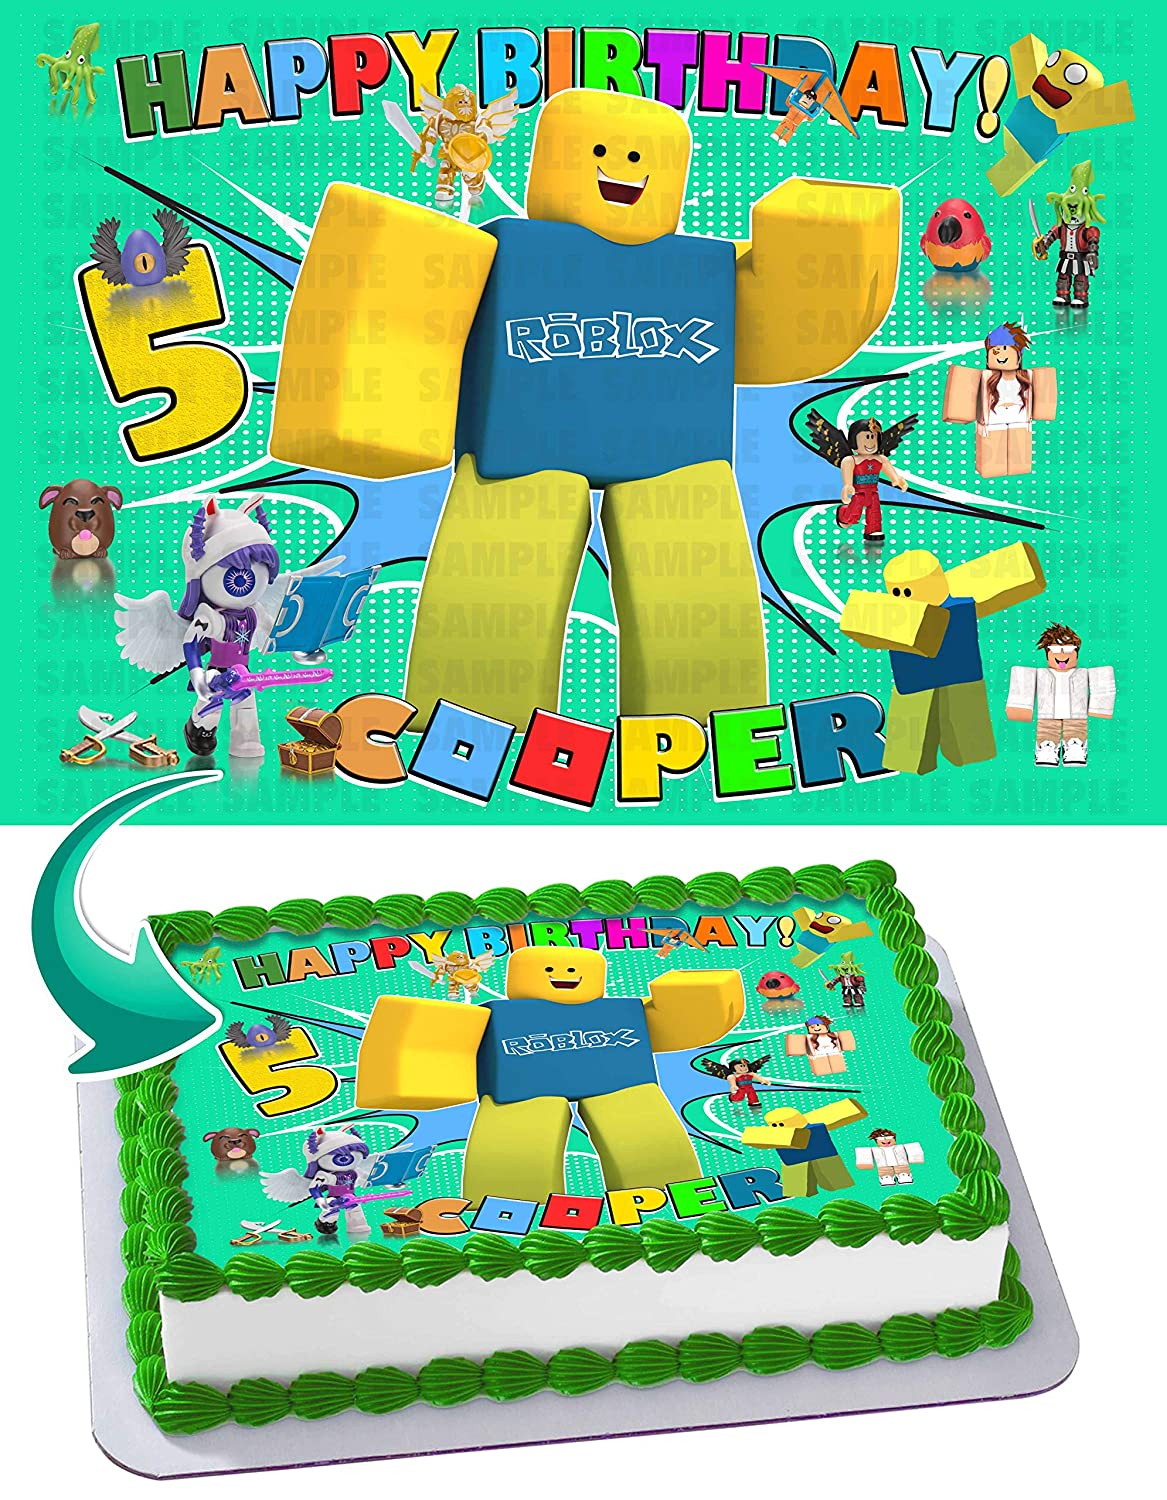 Roblox Character With Green Balloon Roblox Key Generator Roblox 2 Edible Image Cake Topper Party Personalized 1 4 Sheet Amazon Com Grocery Gourmet Food